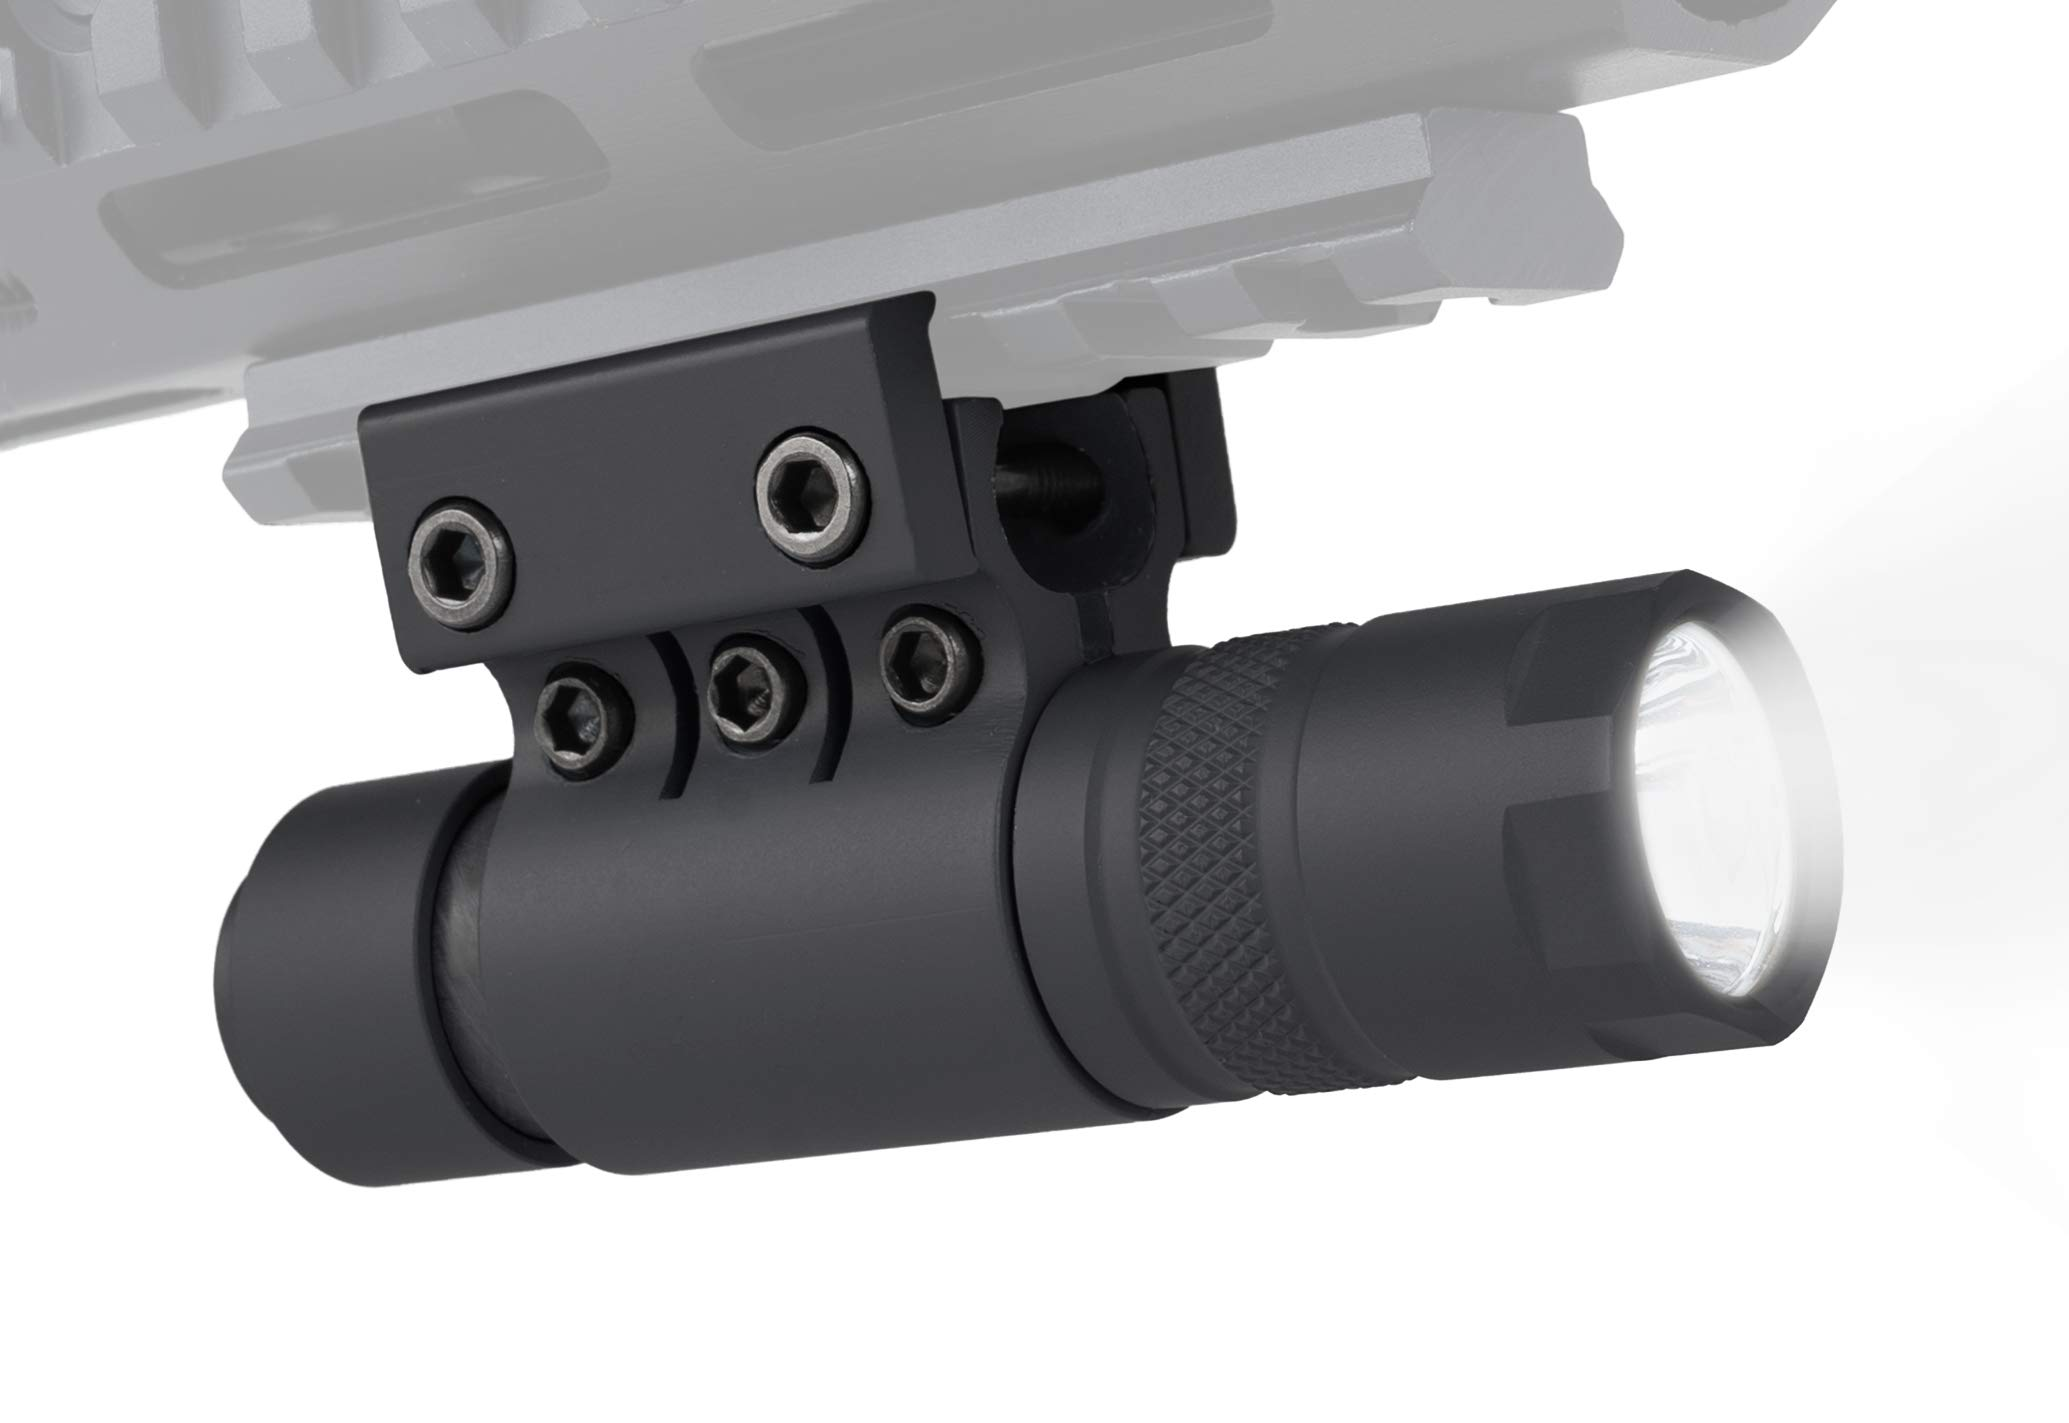 Monstrum 90 Lumens LED Flashlight with Rail Mount and Detachable Remote Pressure Switch